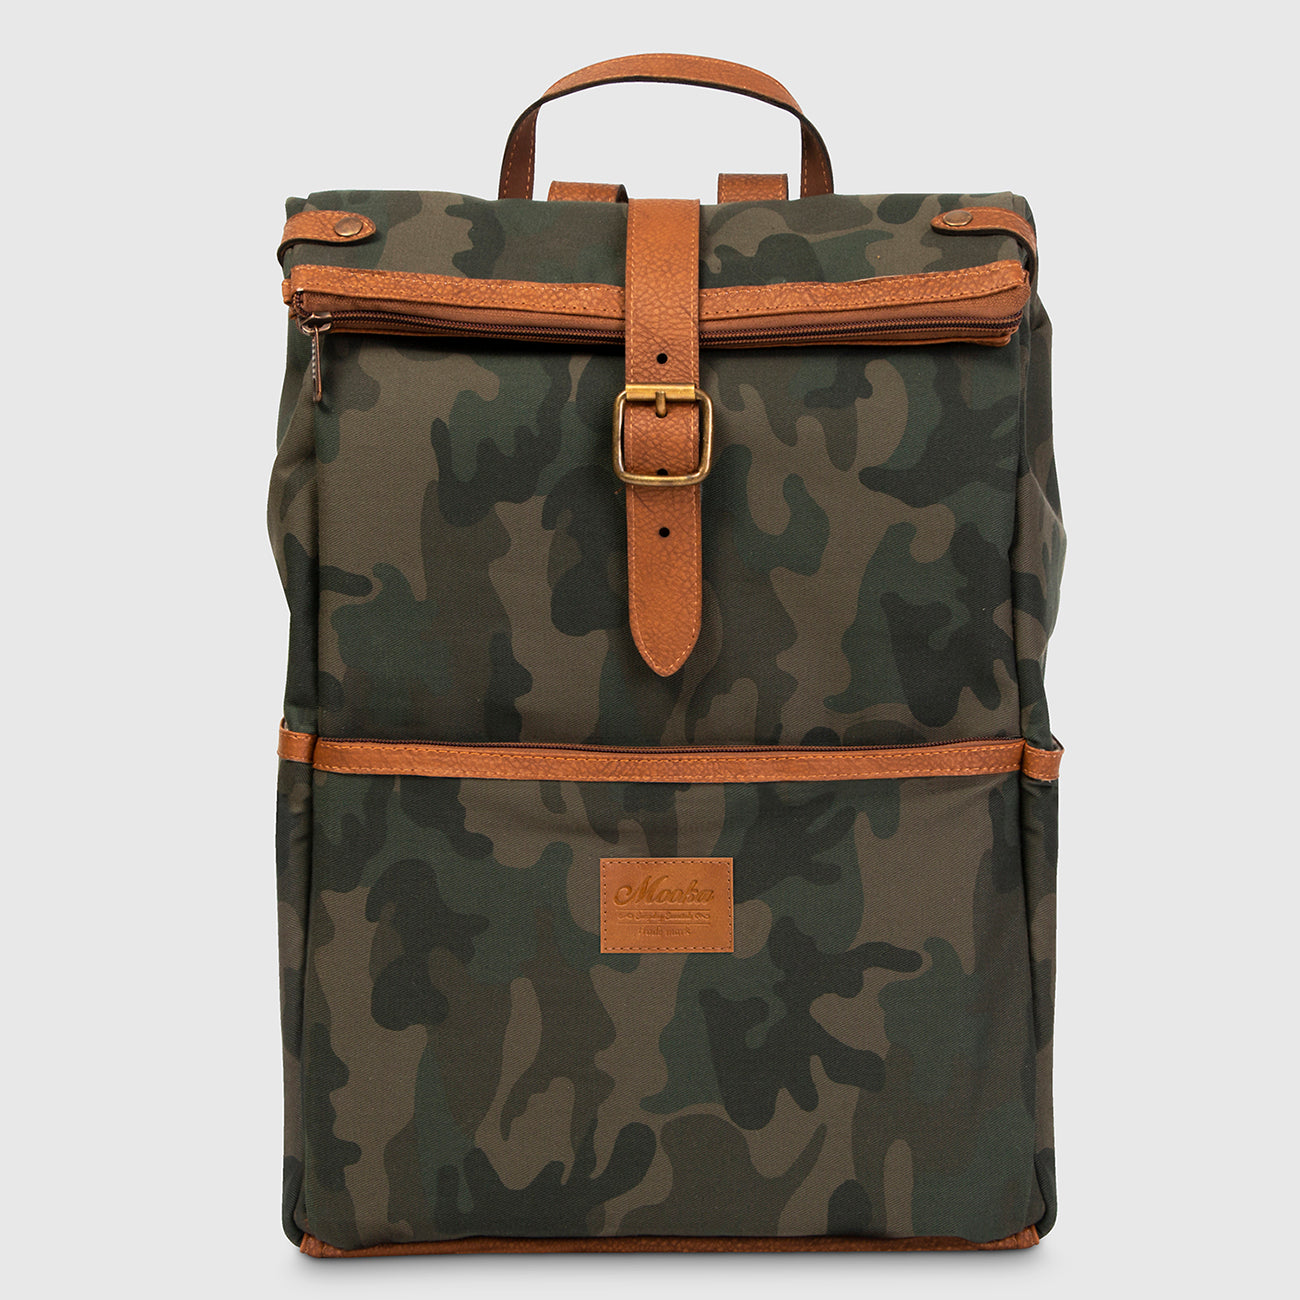 Lotus Backpack Camo